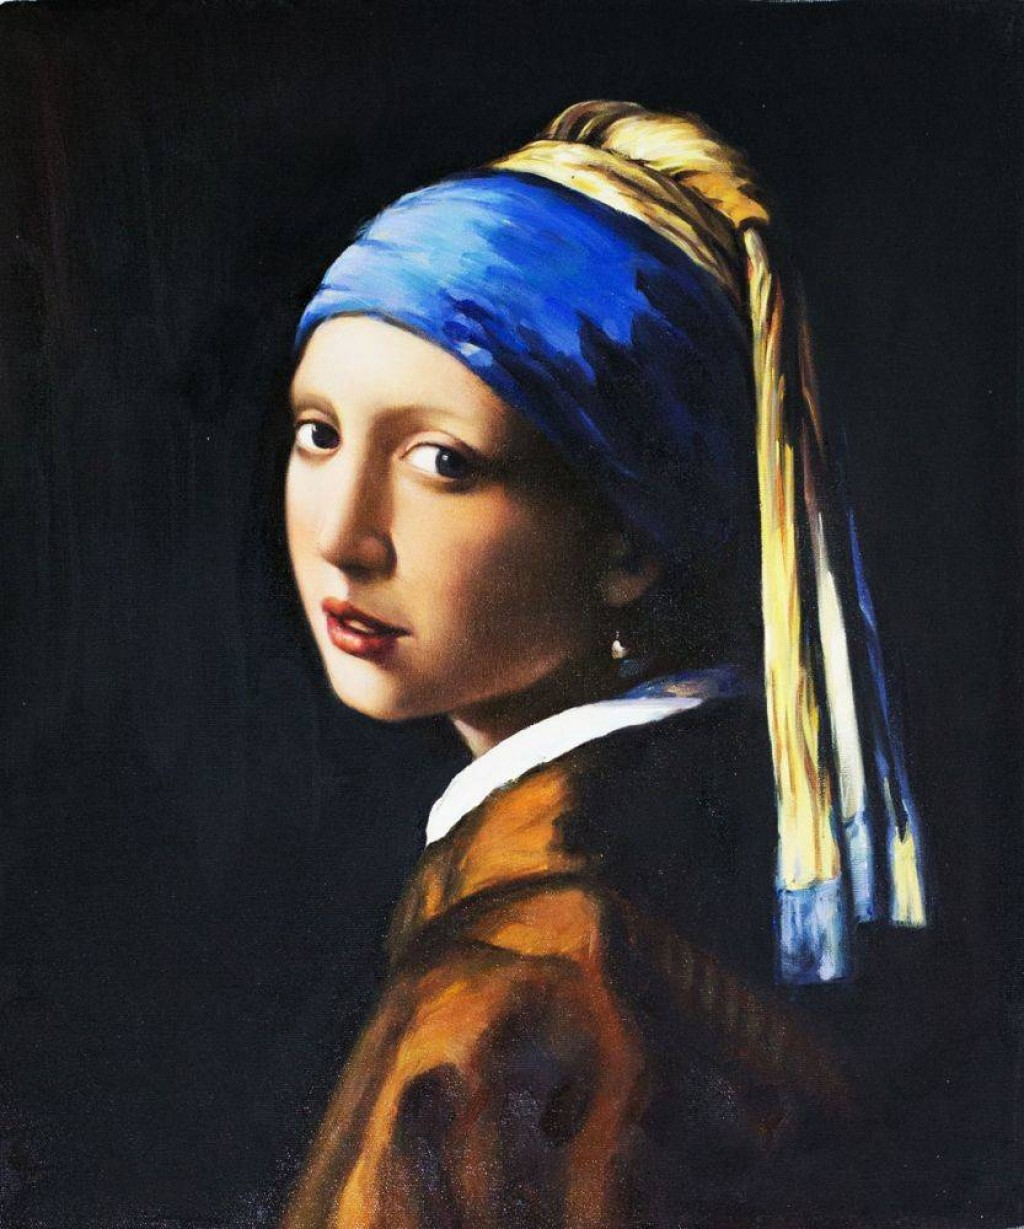 003 Girl With Pearl Earring Essay Outstanding A The Movie Film Review Large